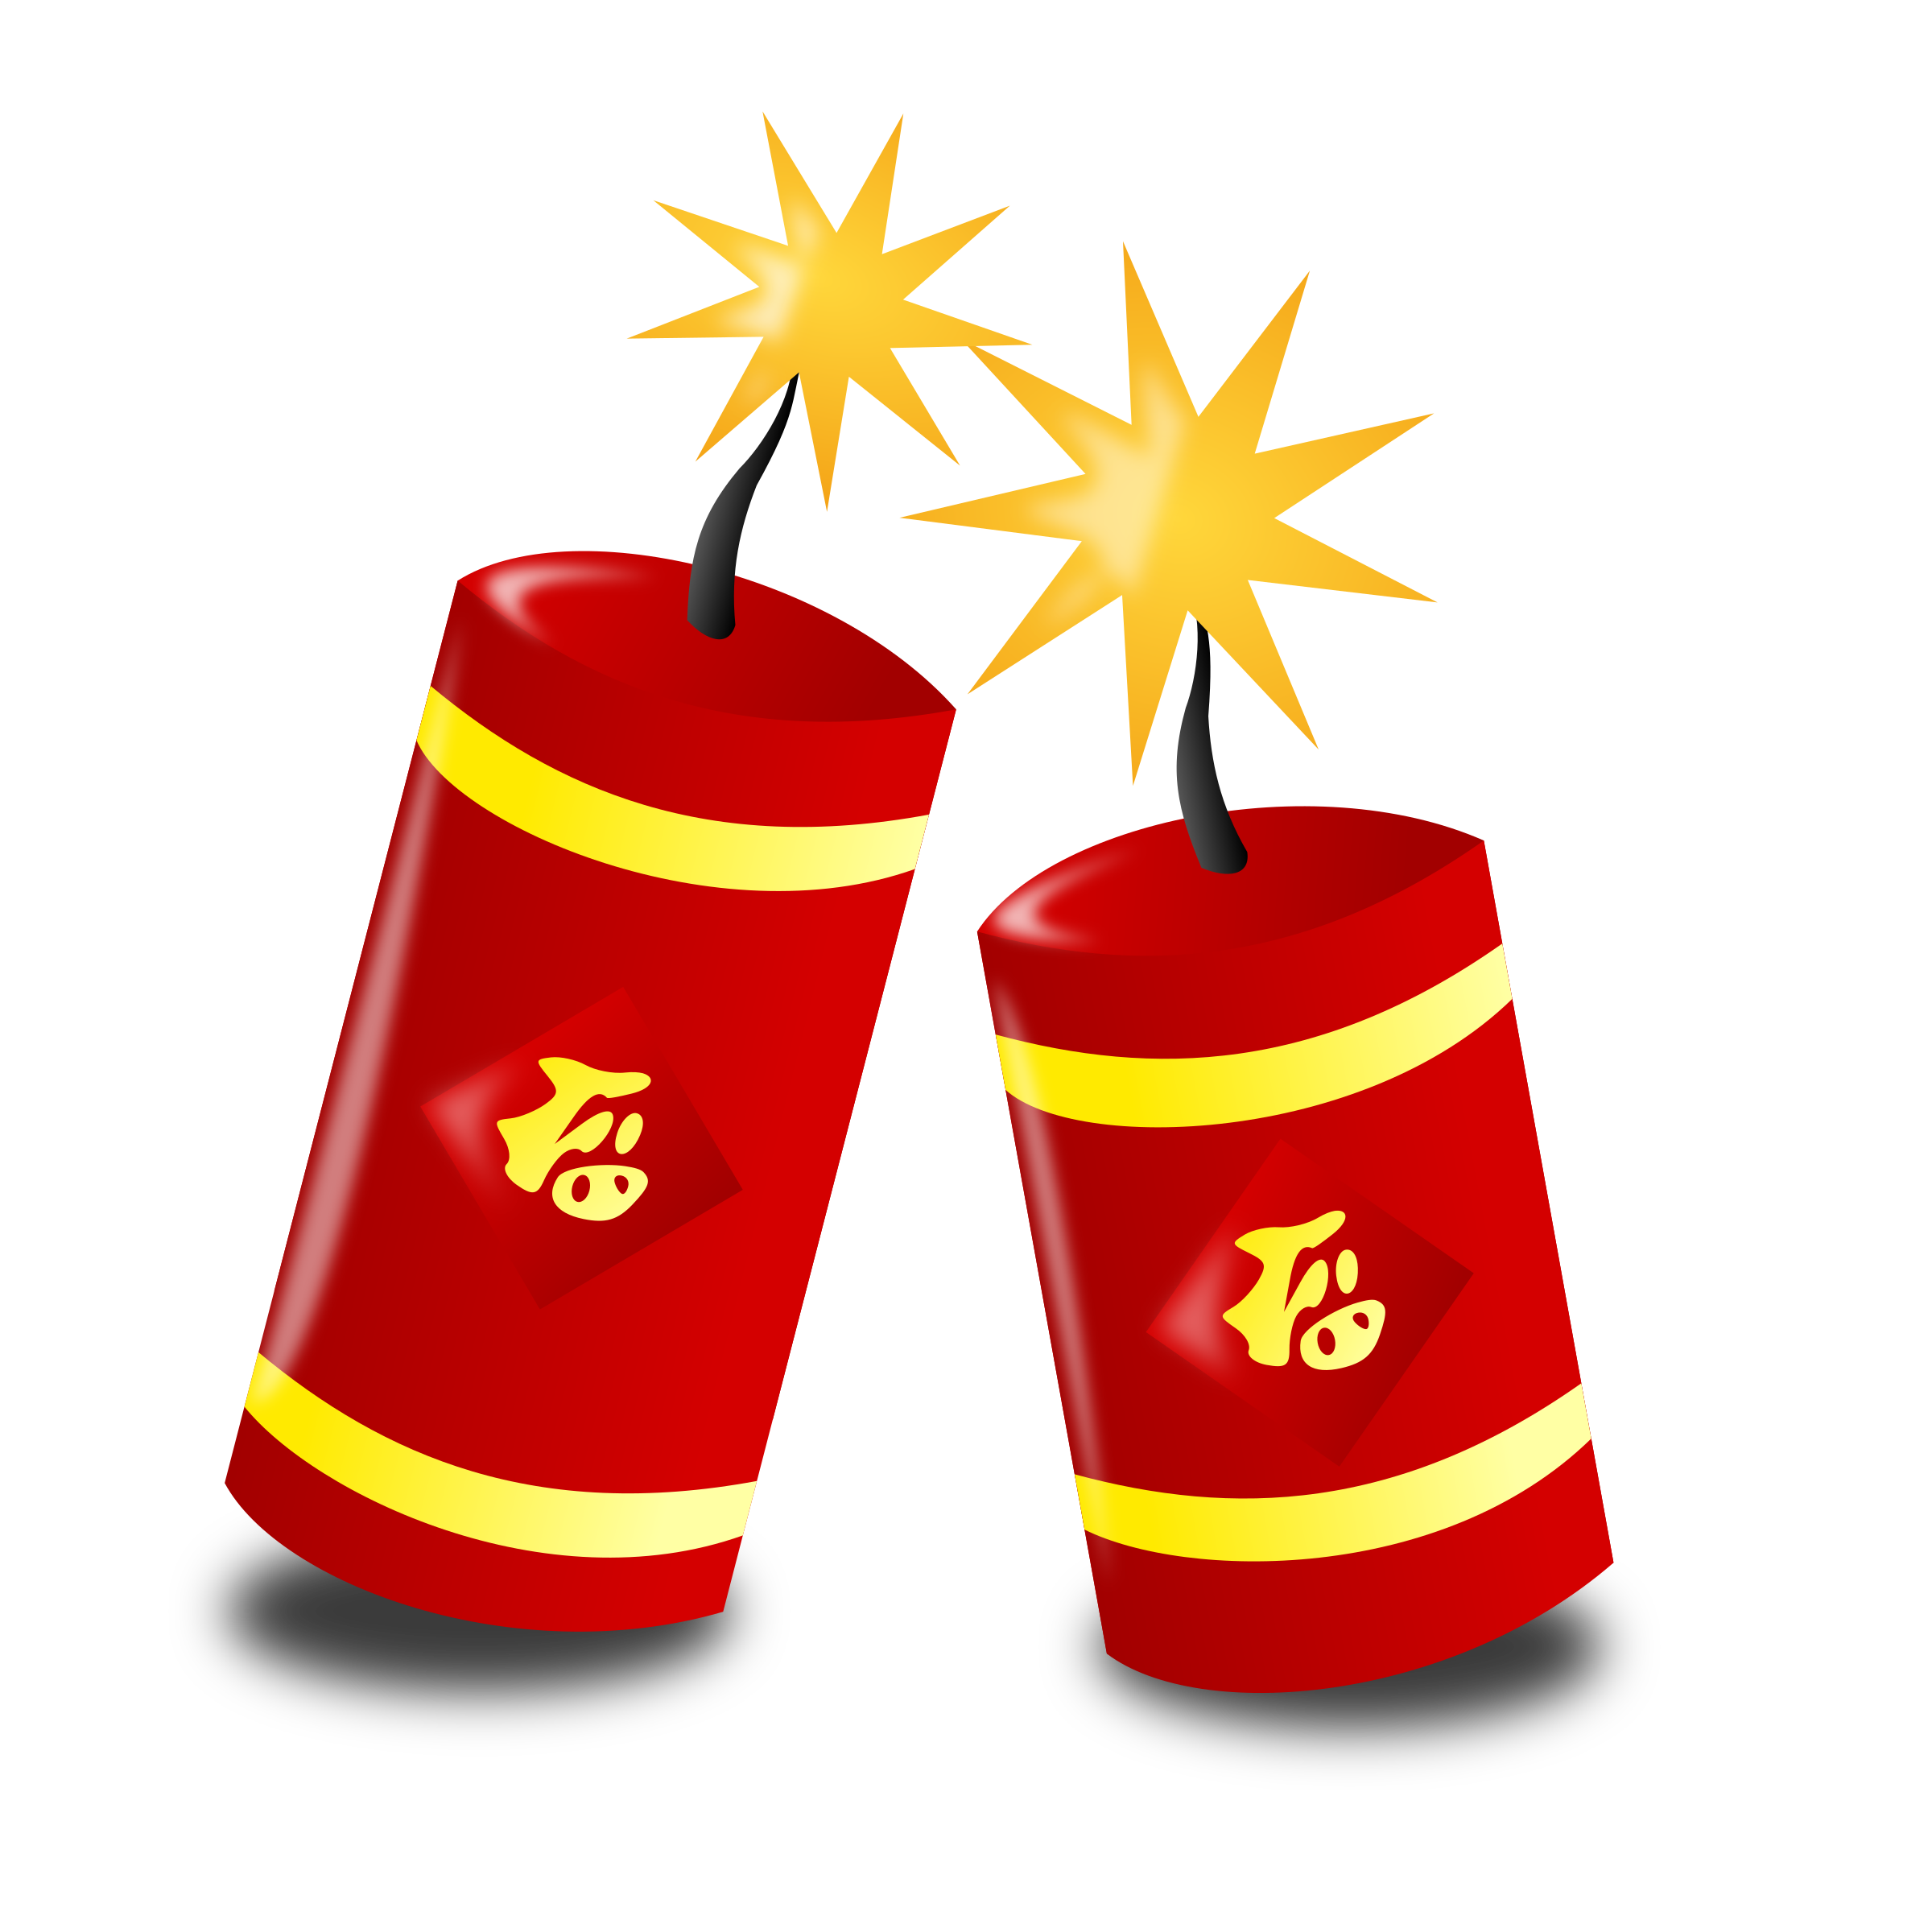 Chinese clipart chinese new year. Marvellous design icon cilpart